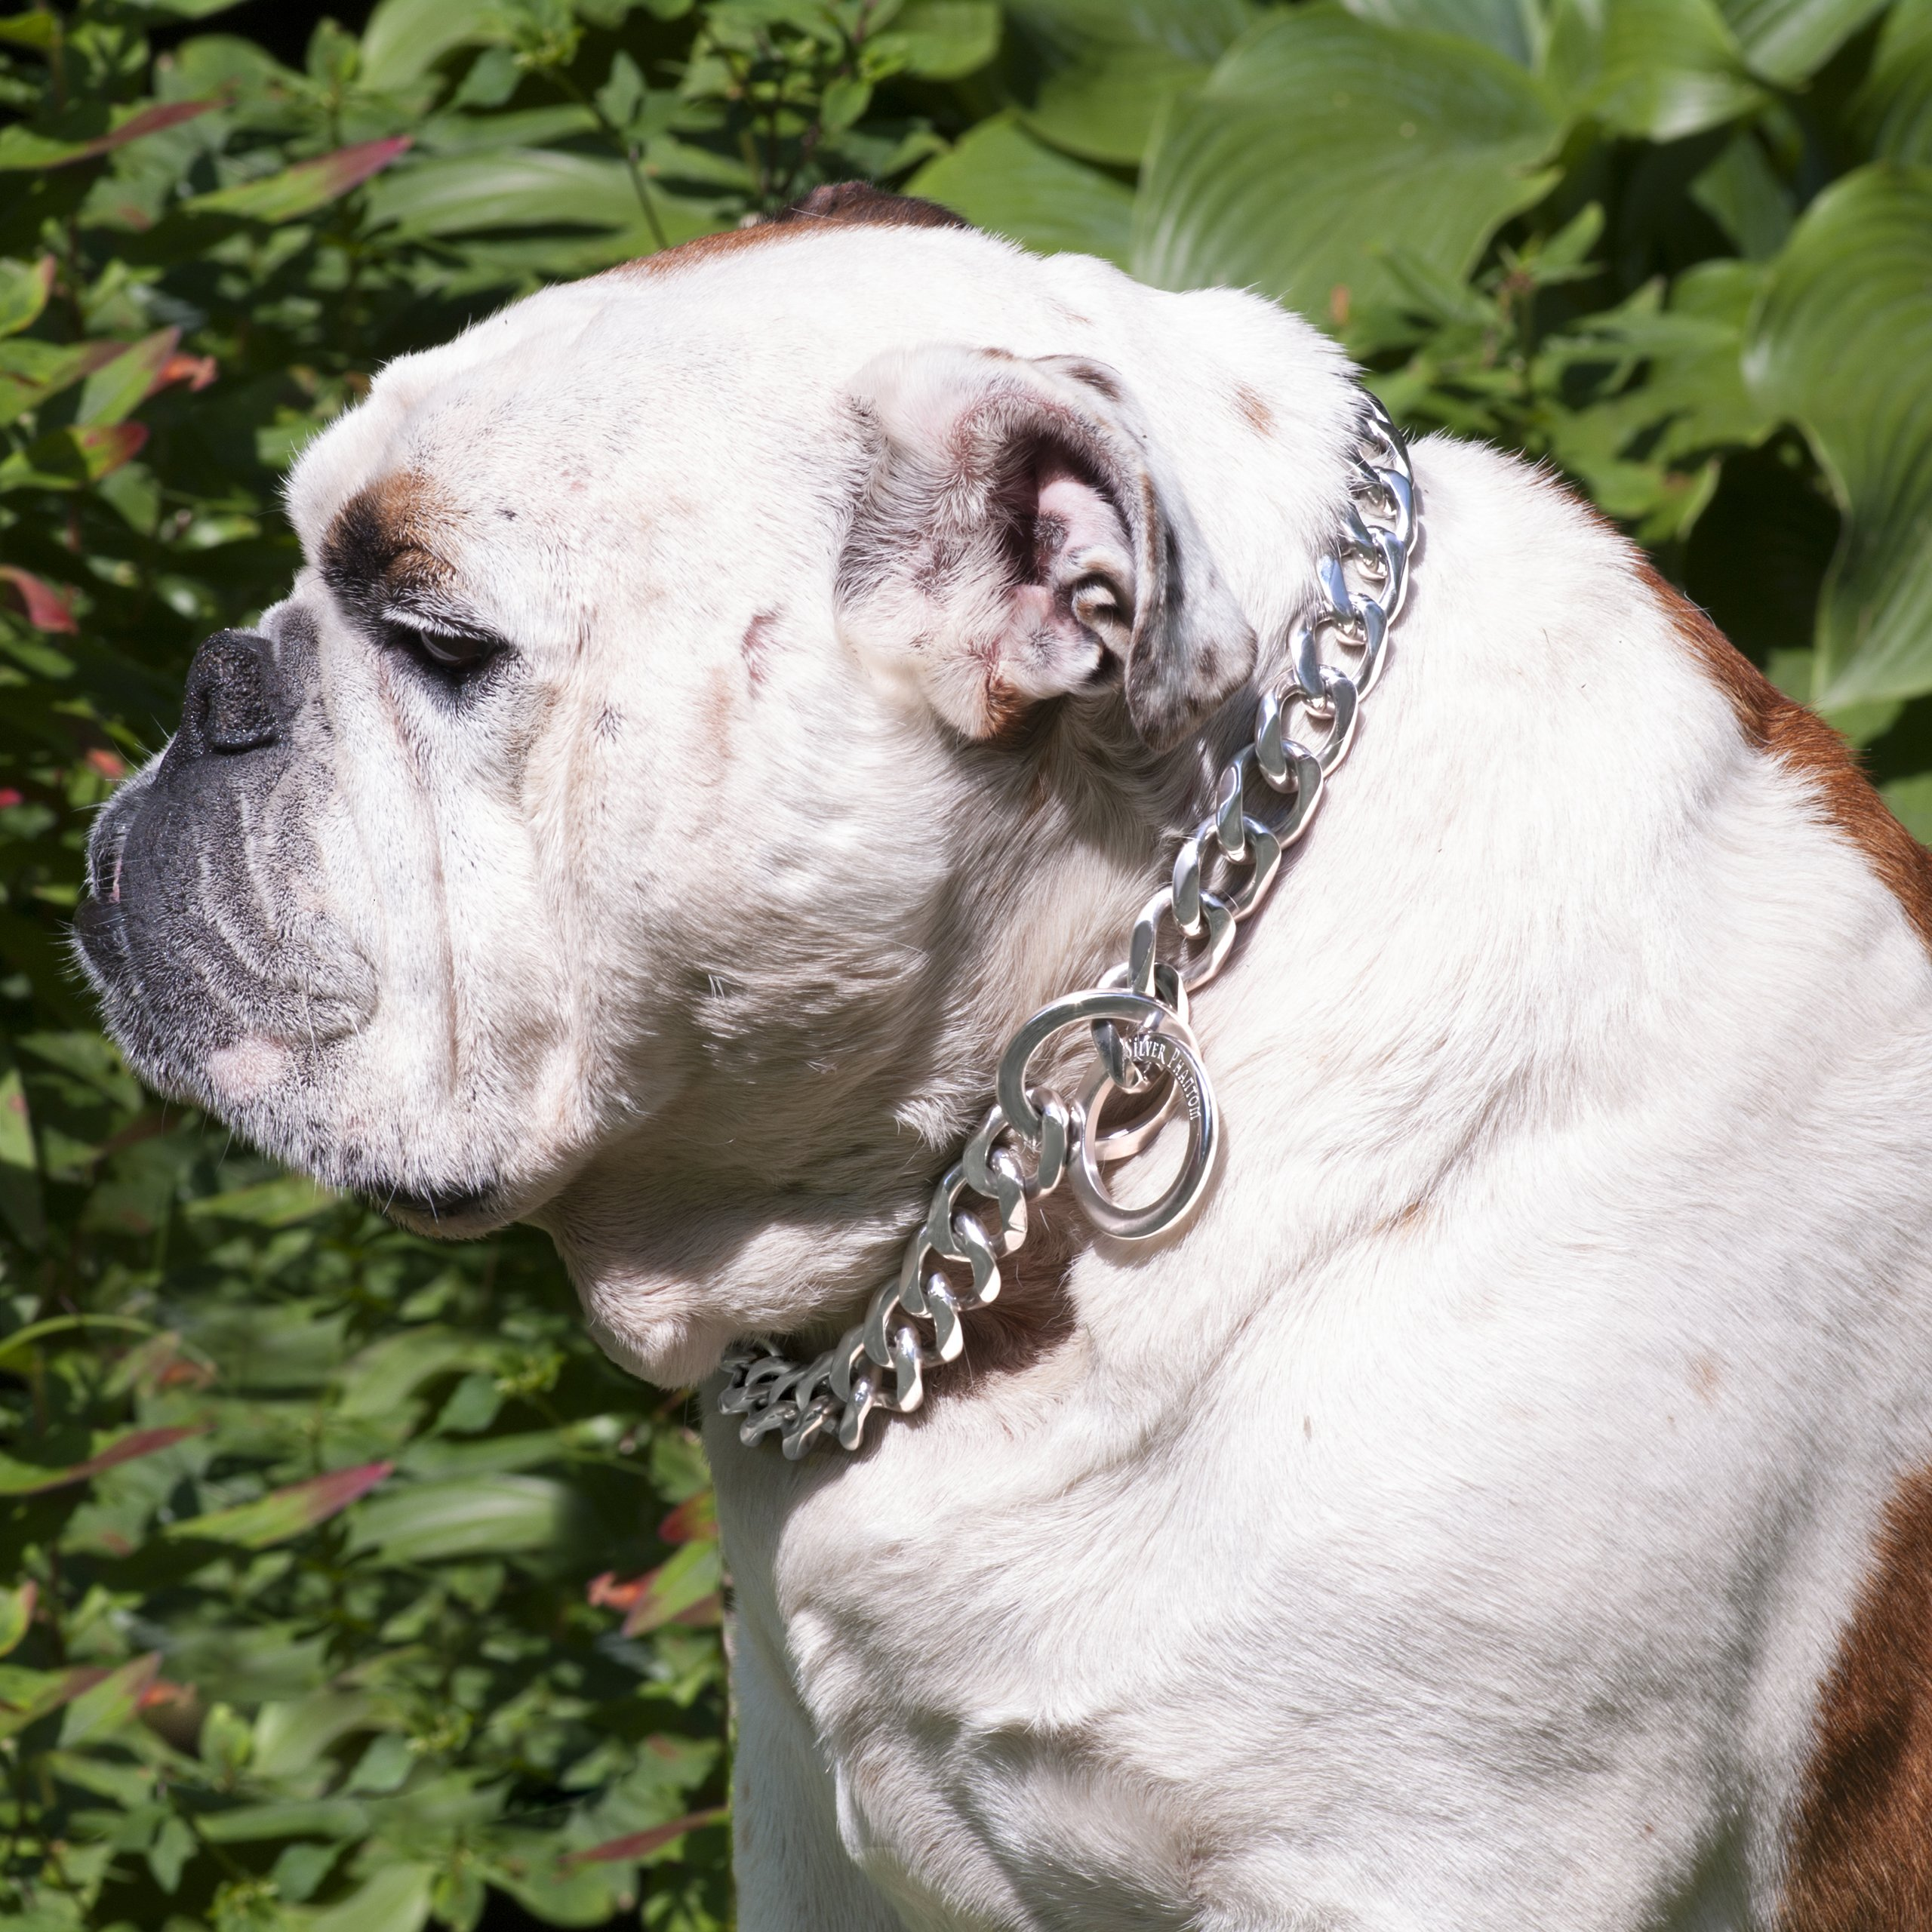 Ultra Strong Designer Pitbull Dog Collar - 20mm Wide Slip Chain Collar - 680 Lbs Strong! - Best for Pit Bull, Mastiff, Bulldog, & Big Breeds, 26'' Length